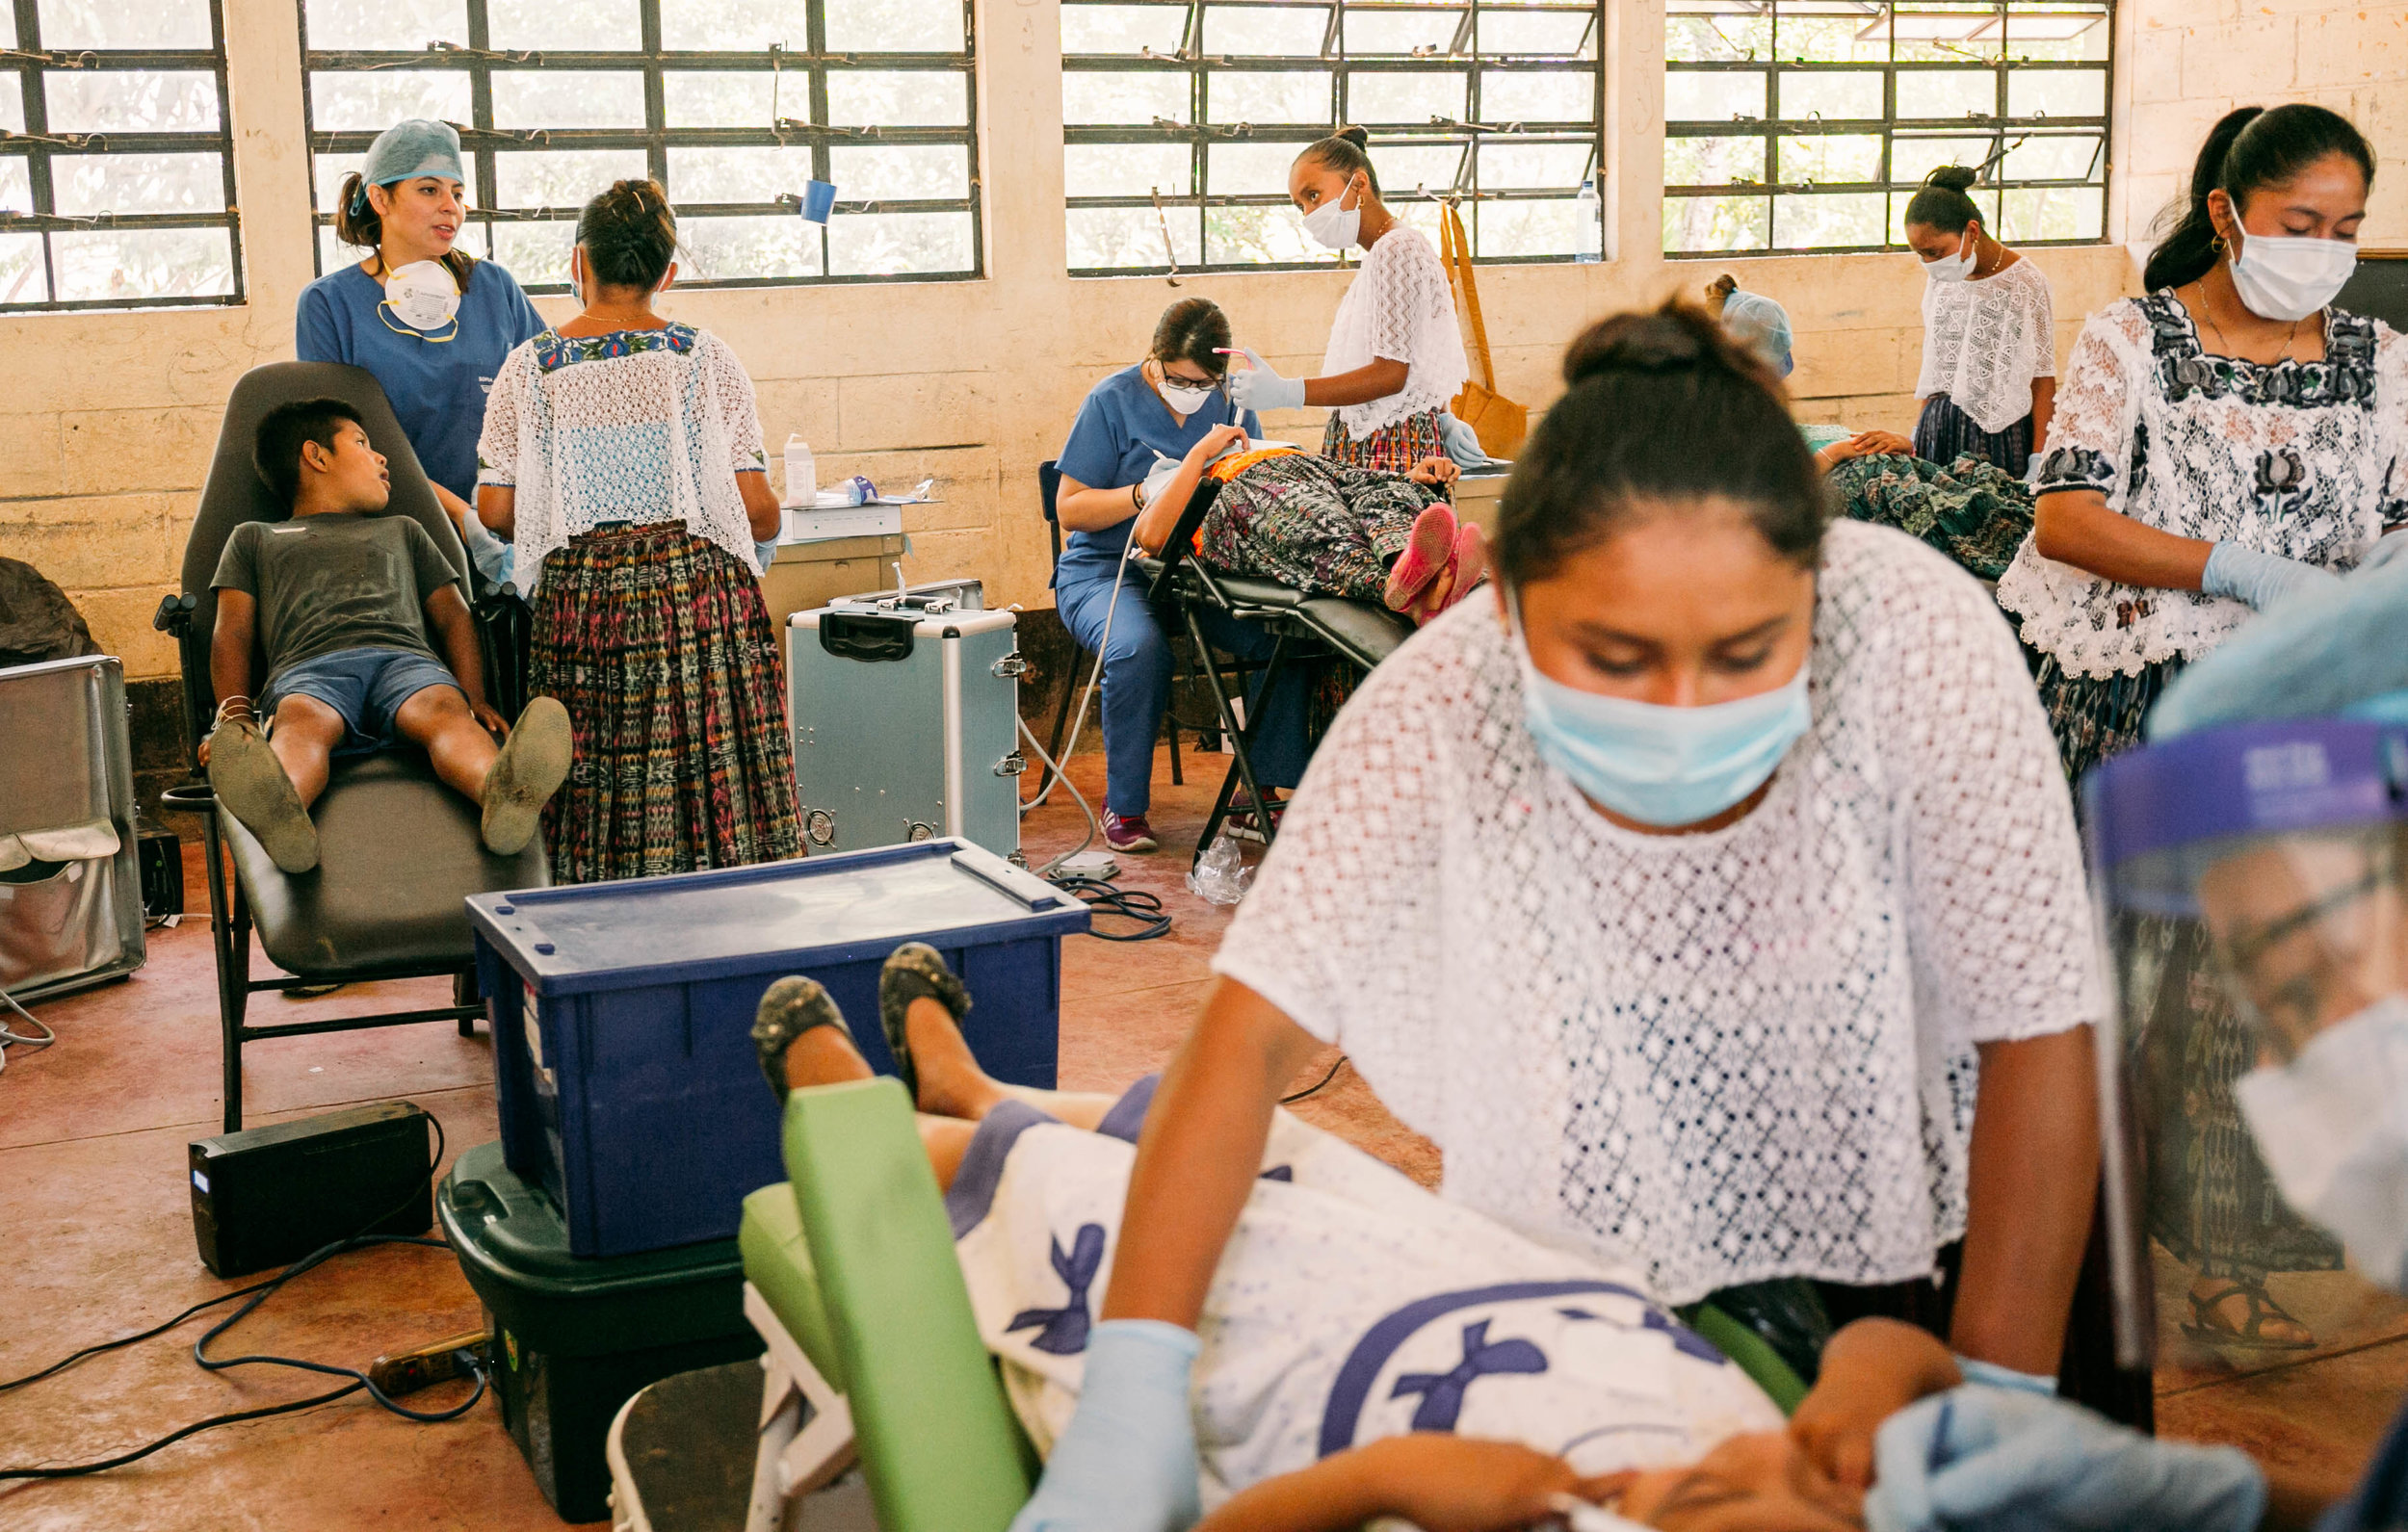 our dental clinic where 12 dentists did extractions and fillings